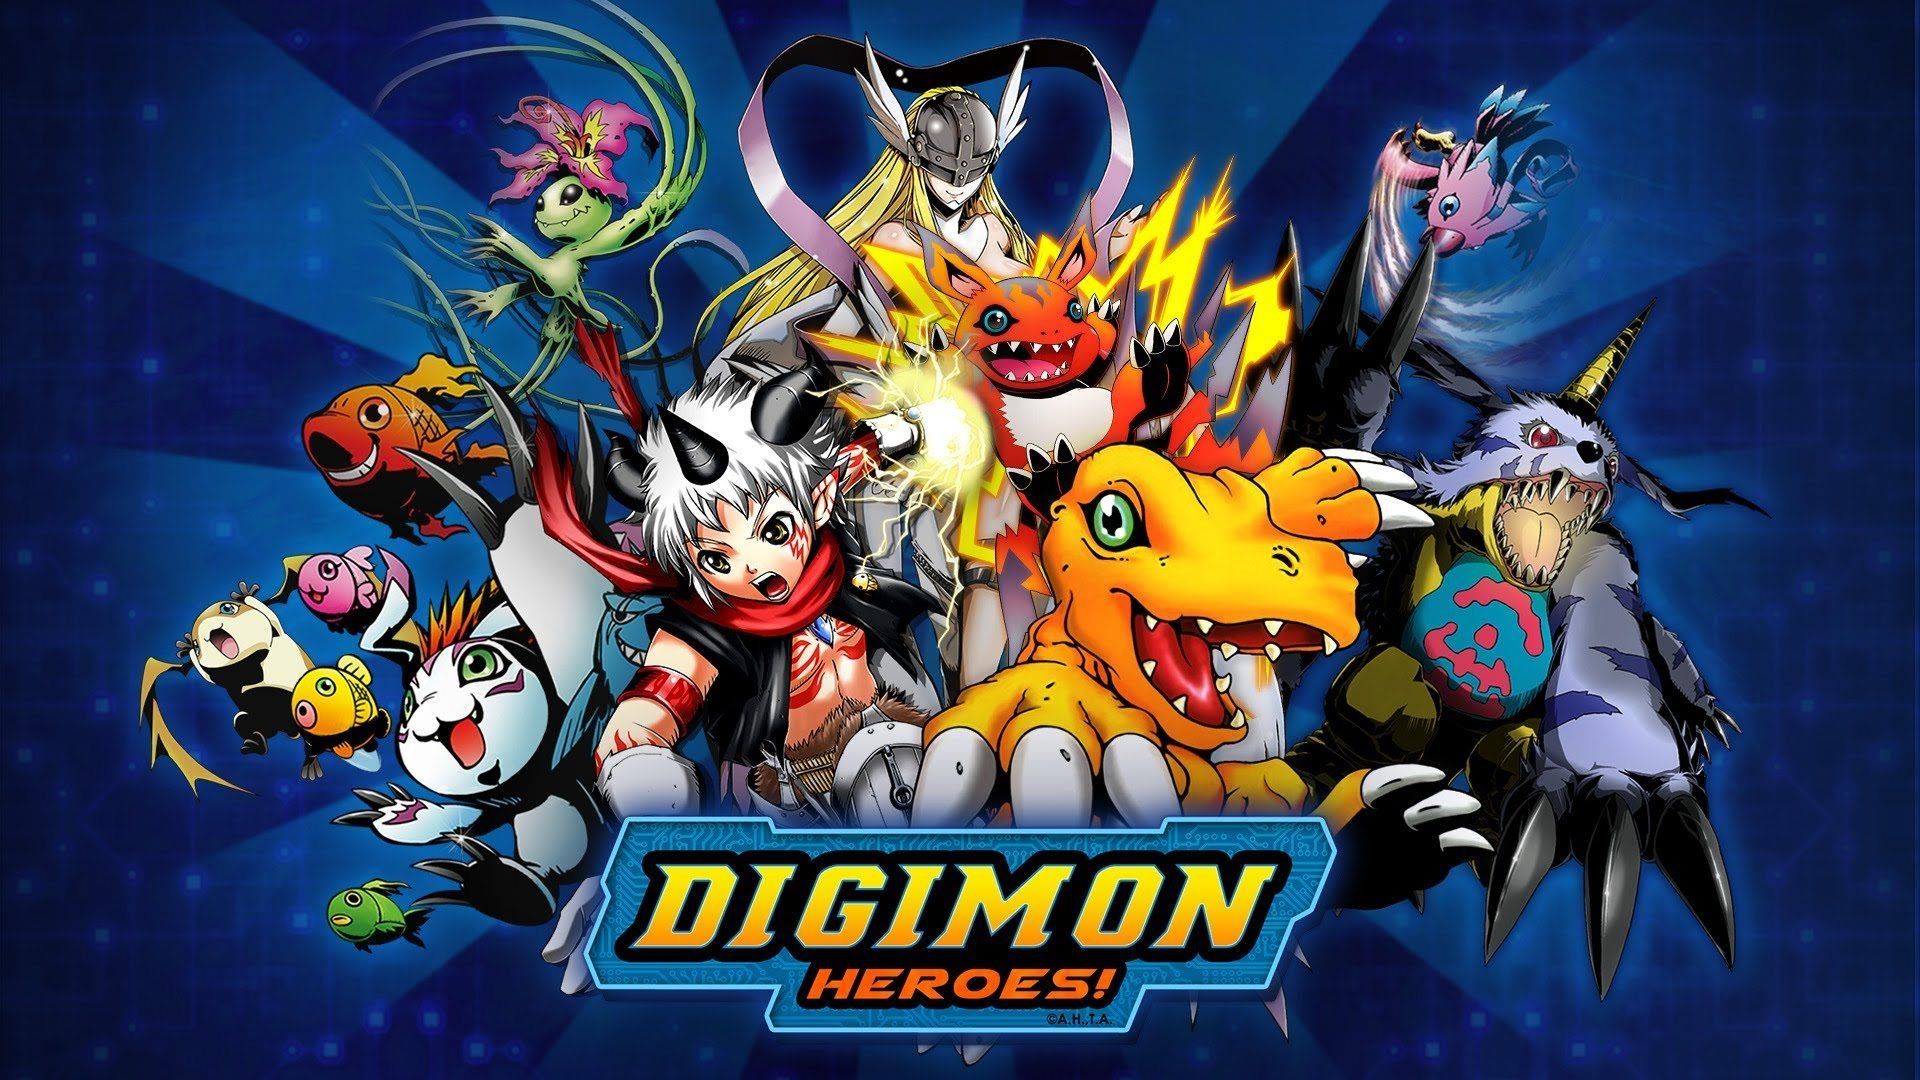 digimon heroes featured